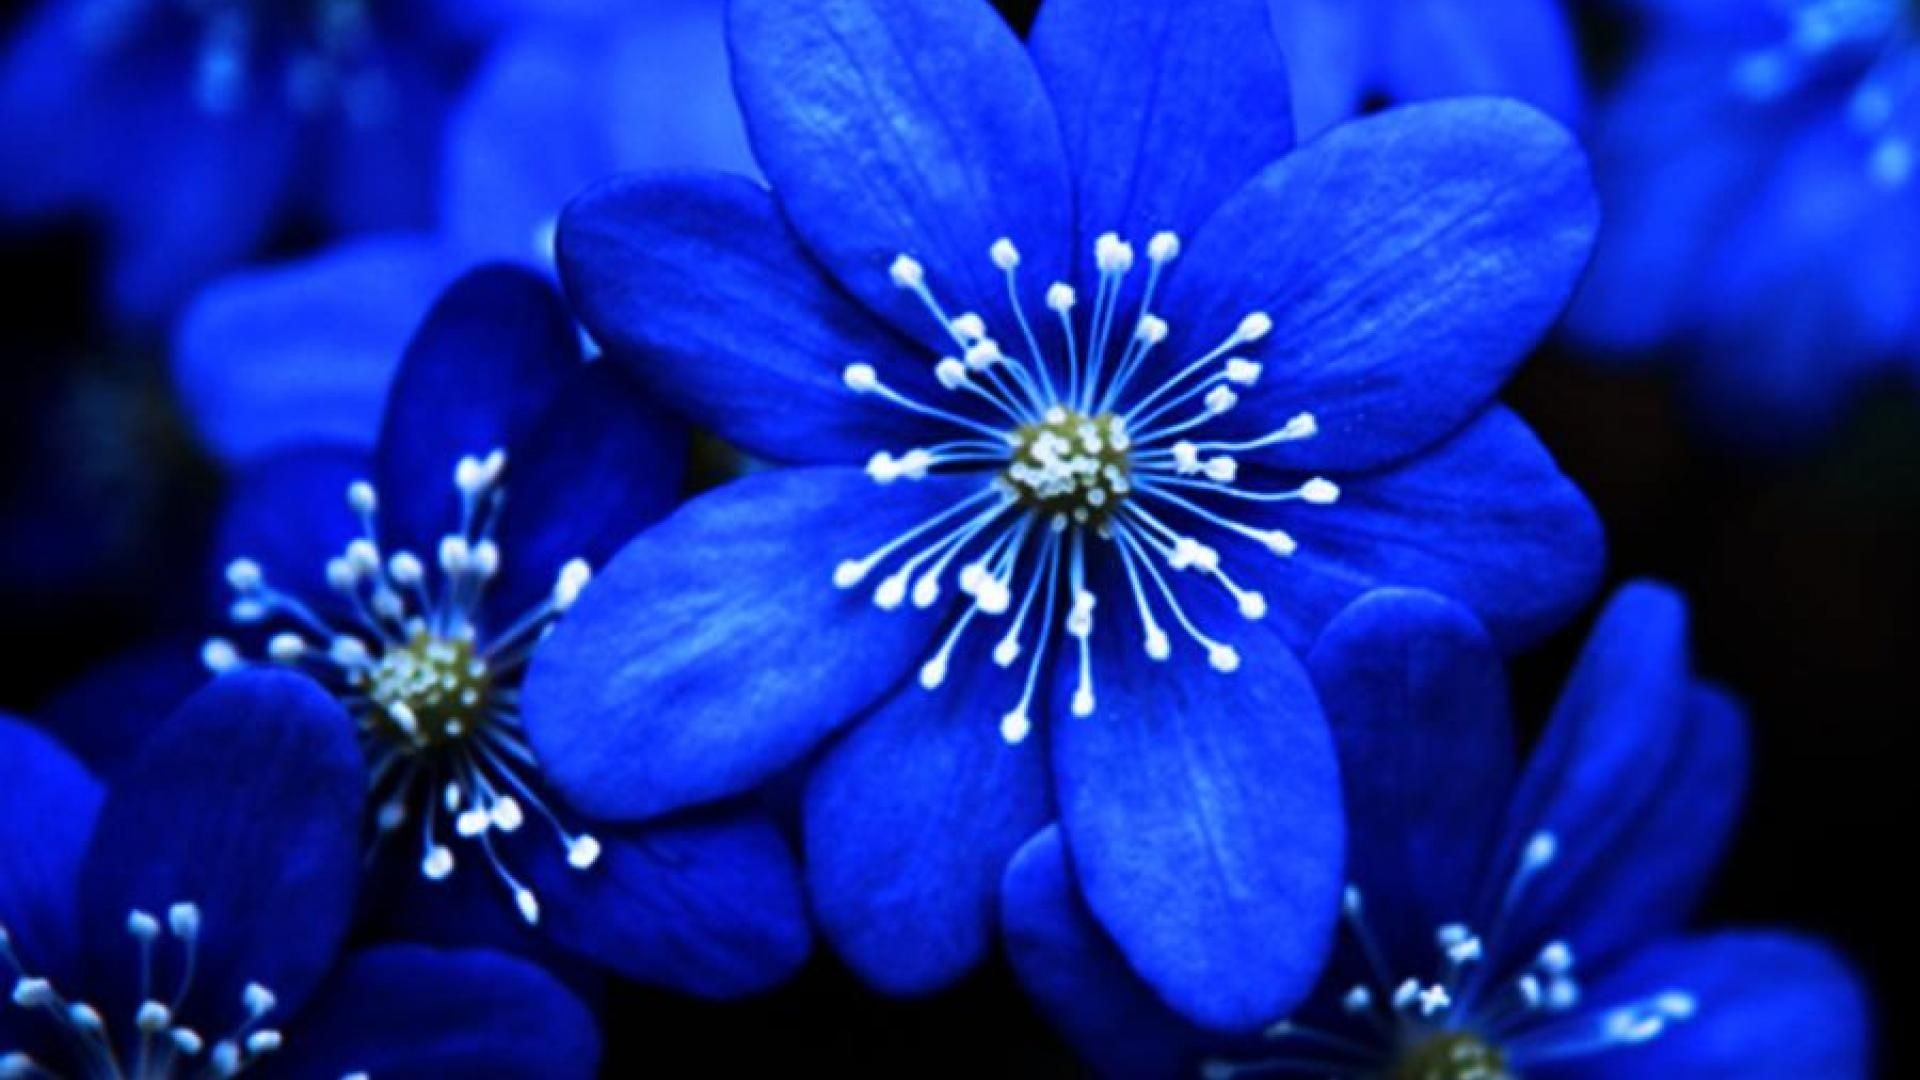 Res: 1920x1080, blue flowers images - Google Search